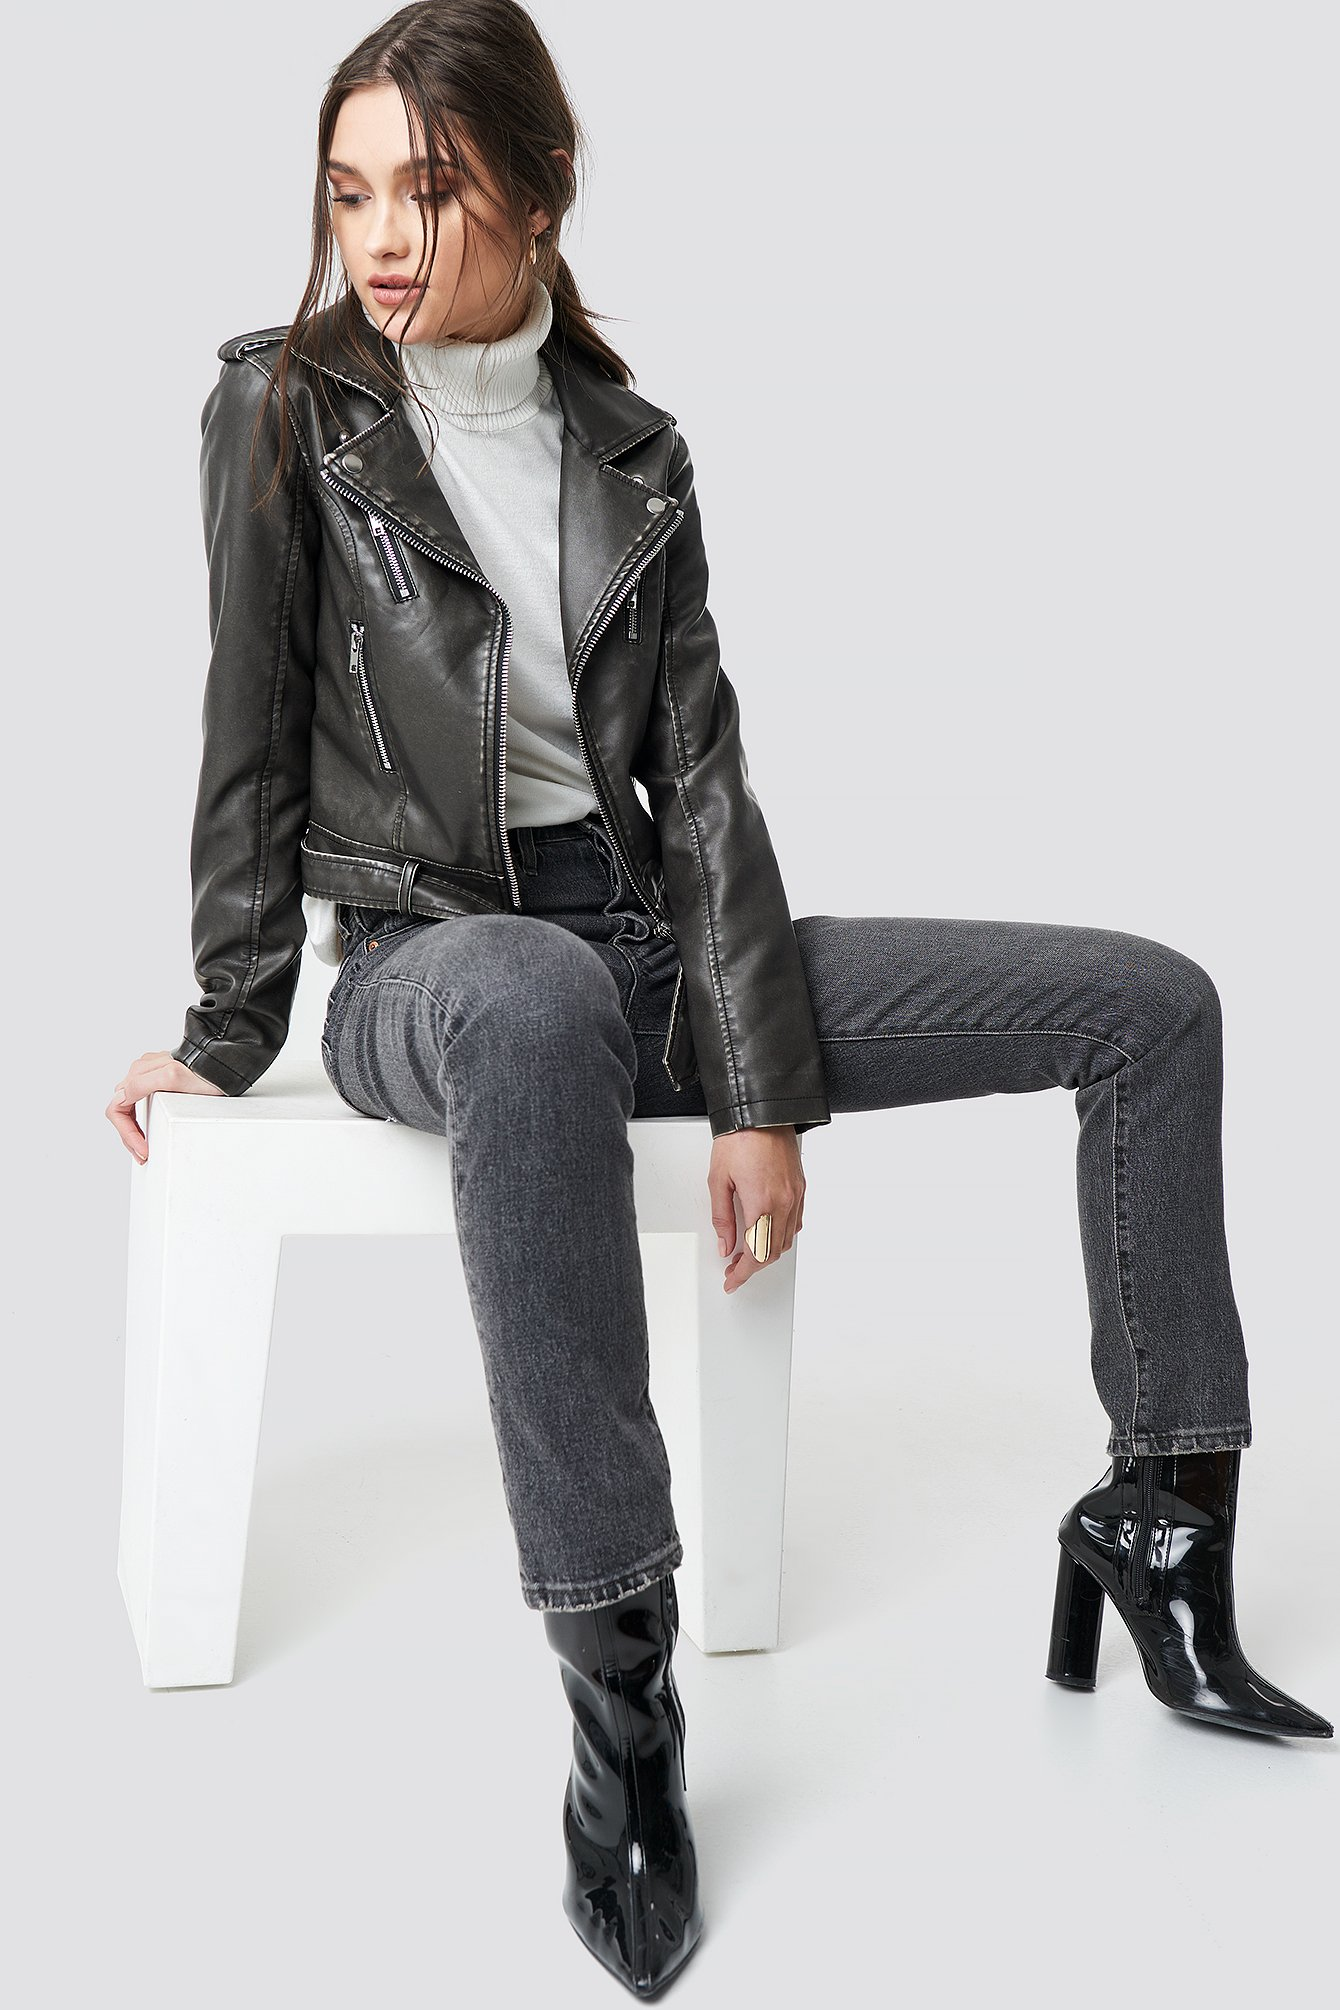 Pu Leather Distressed Biker Jacket Washed Black by Na Kd Trend